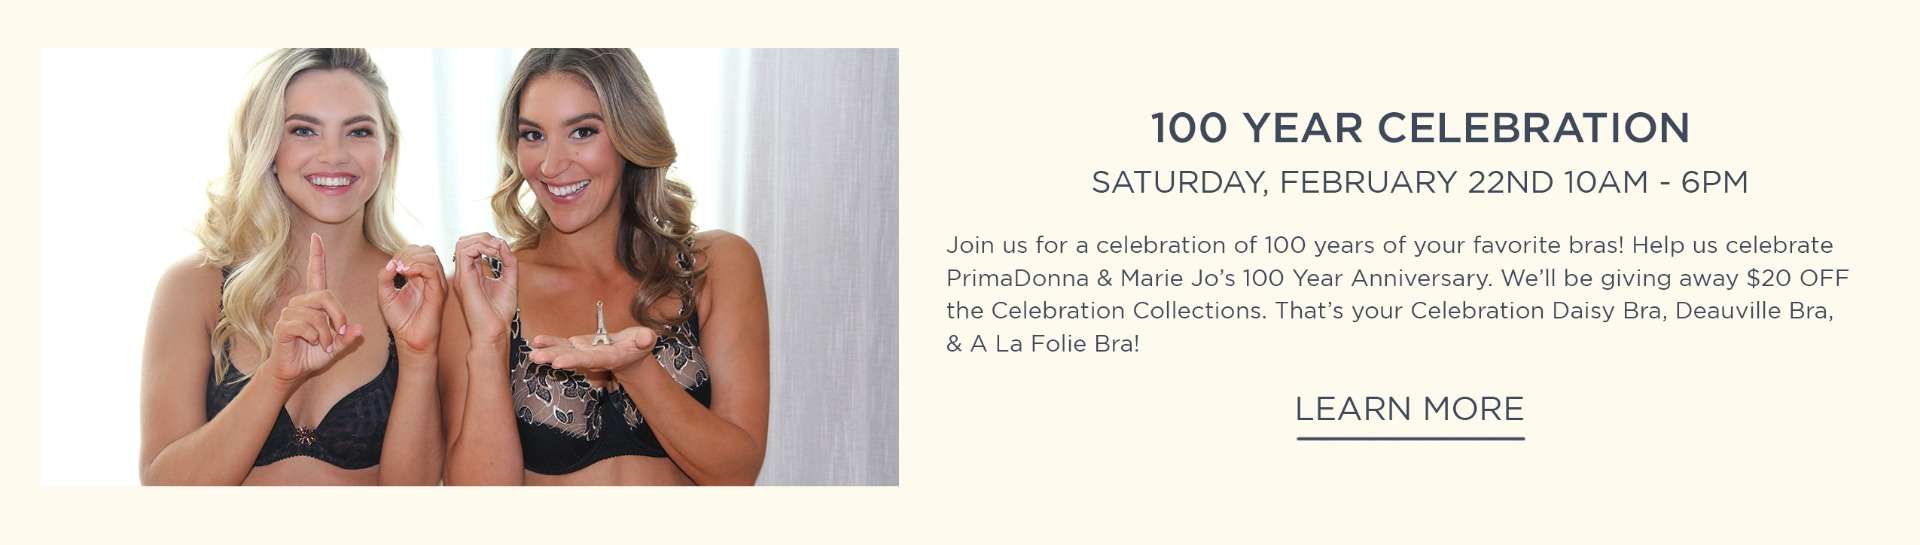 100 Year Anniversary Party